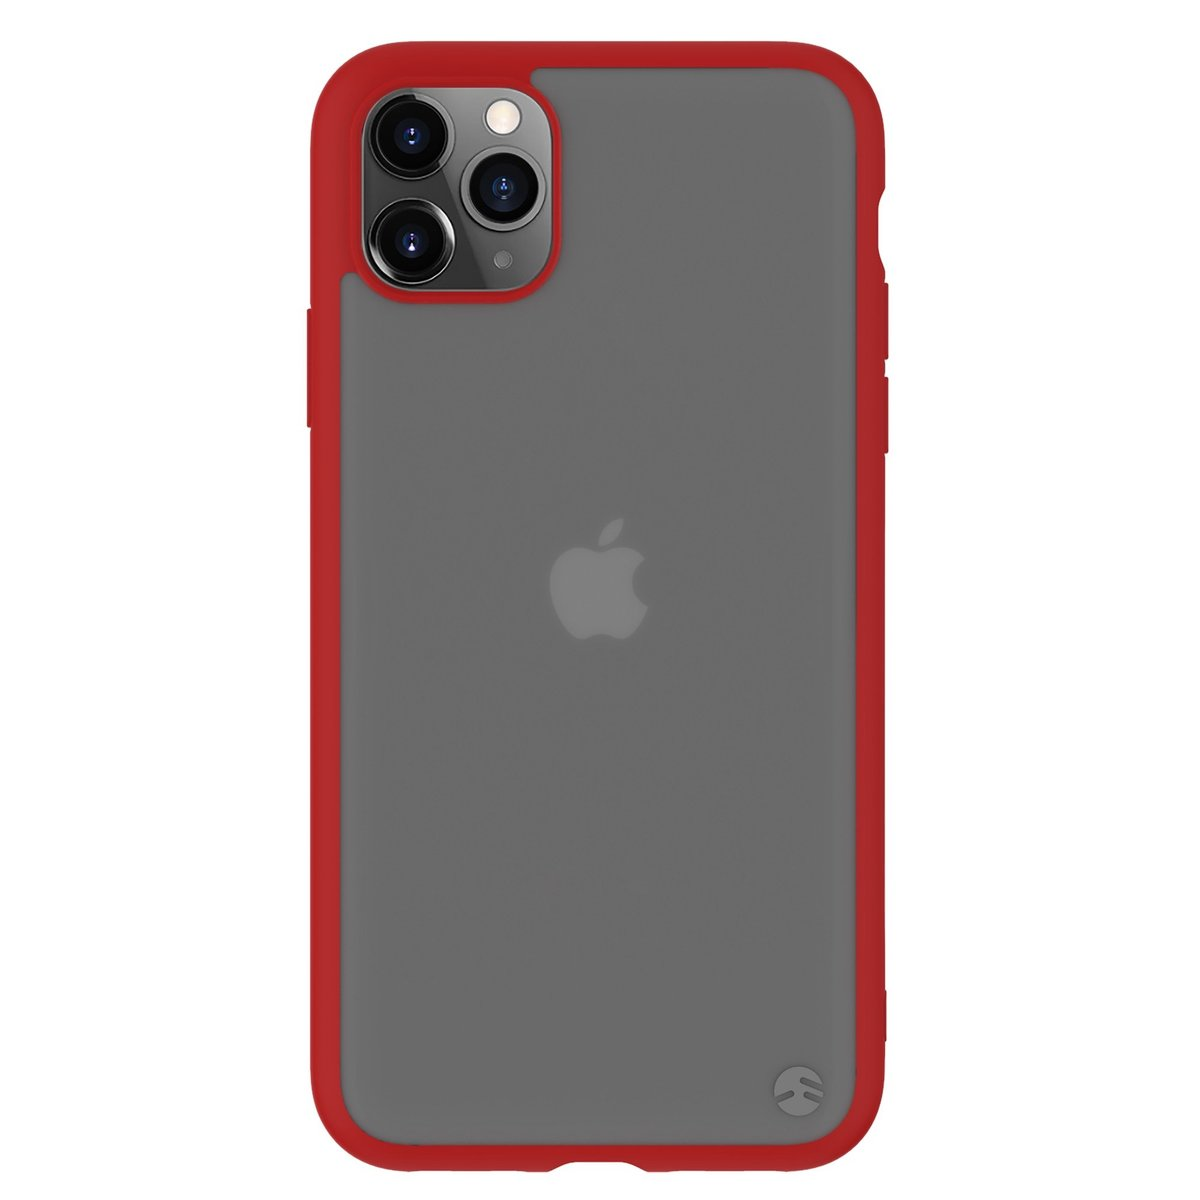 AERO Case for iPhone 11 Pro Max - Red